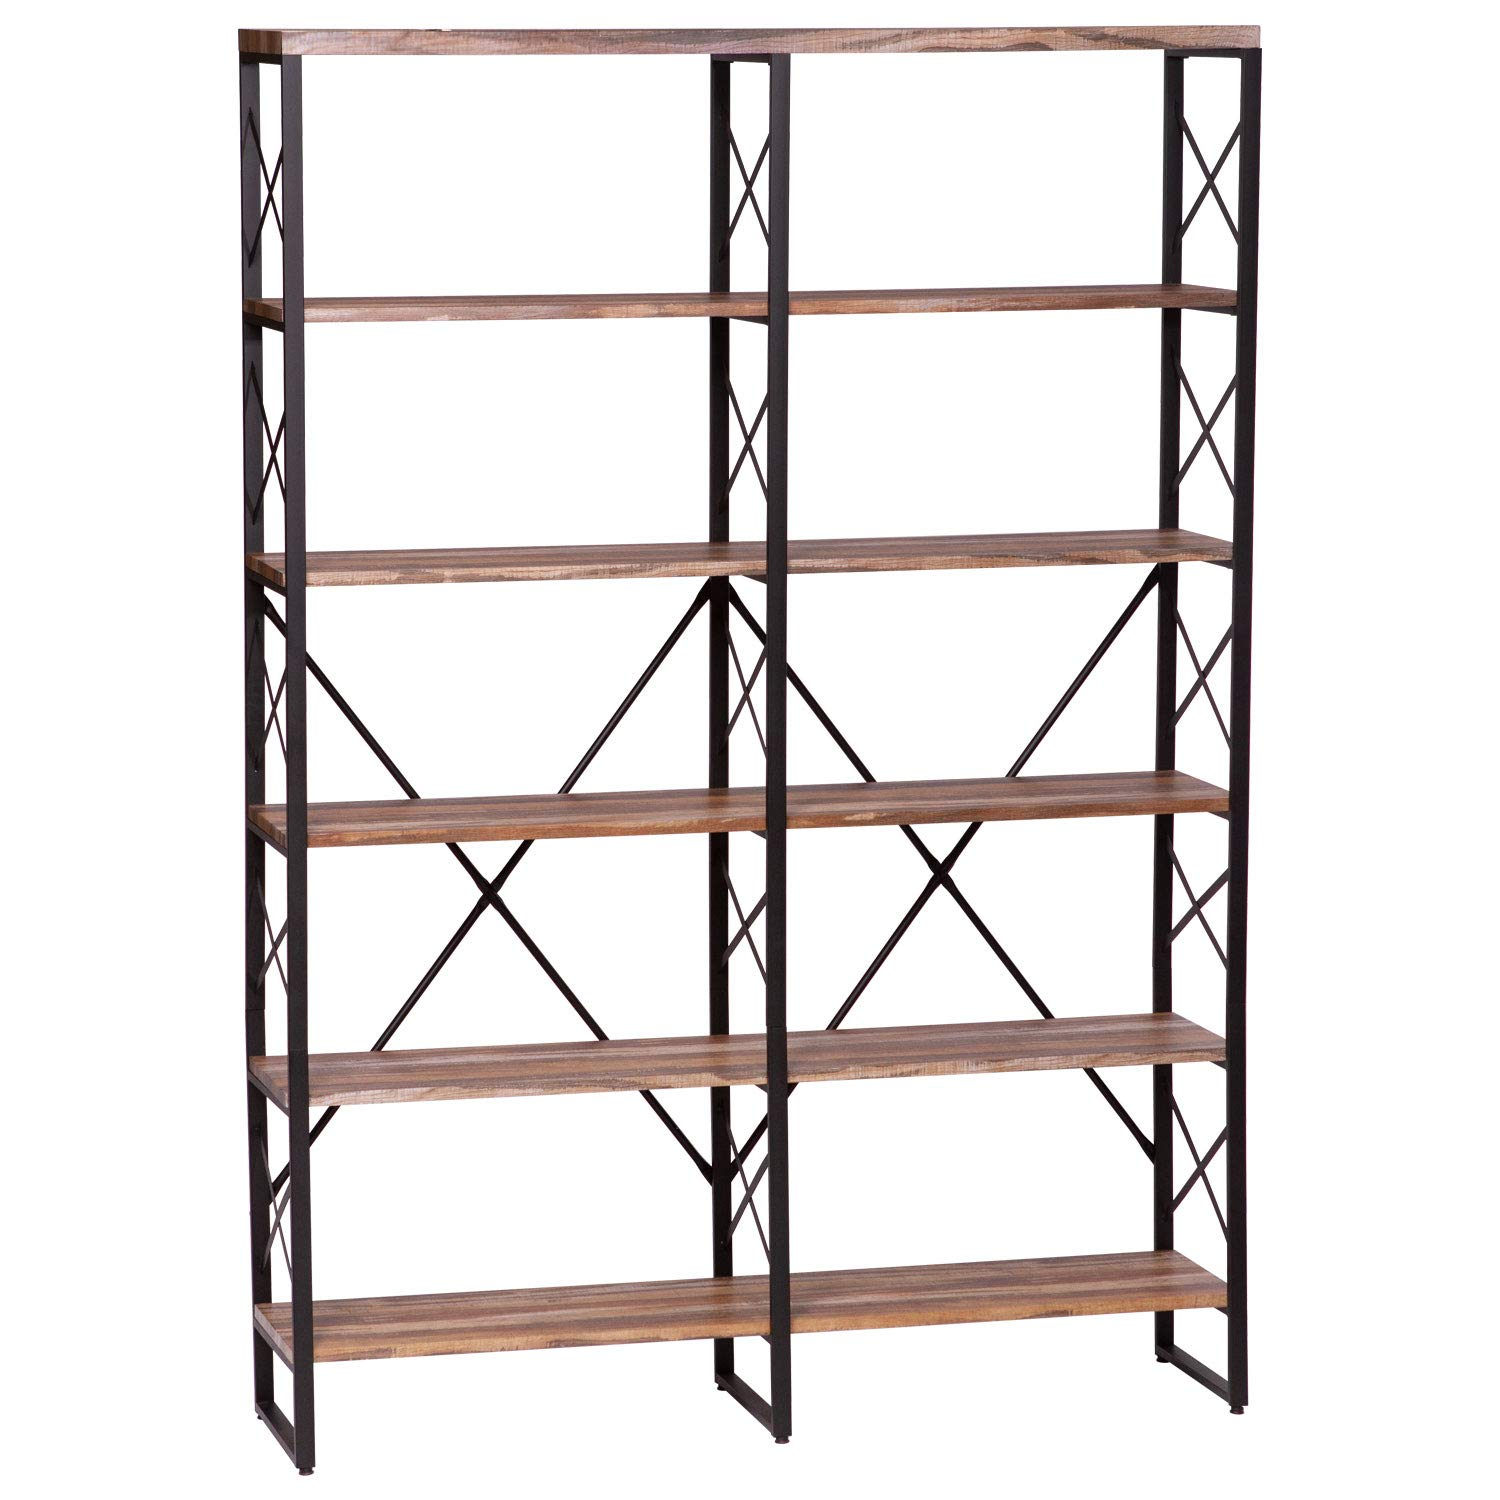 IRONCK Bookshelf, Double Wide 6-Tier 76'' H Open Bookcase Vintage Industrial Style Shelves Wood and Metal Bookshelves, Home, Office Furniture by IRONCK